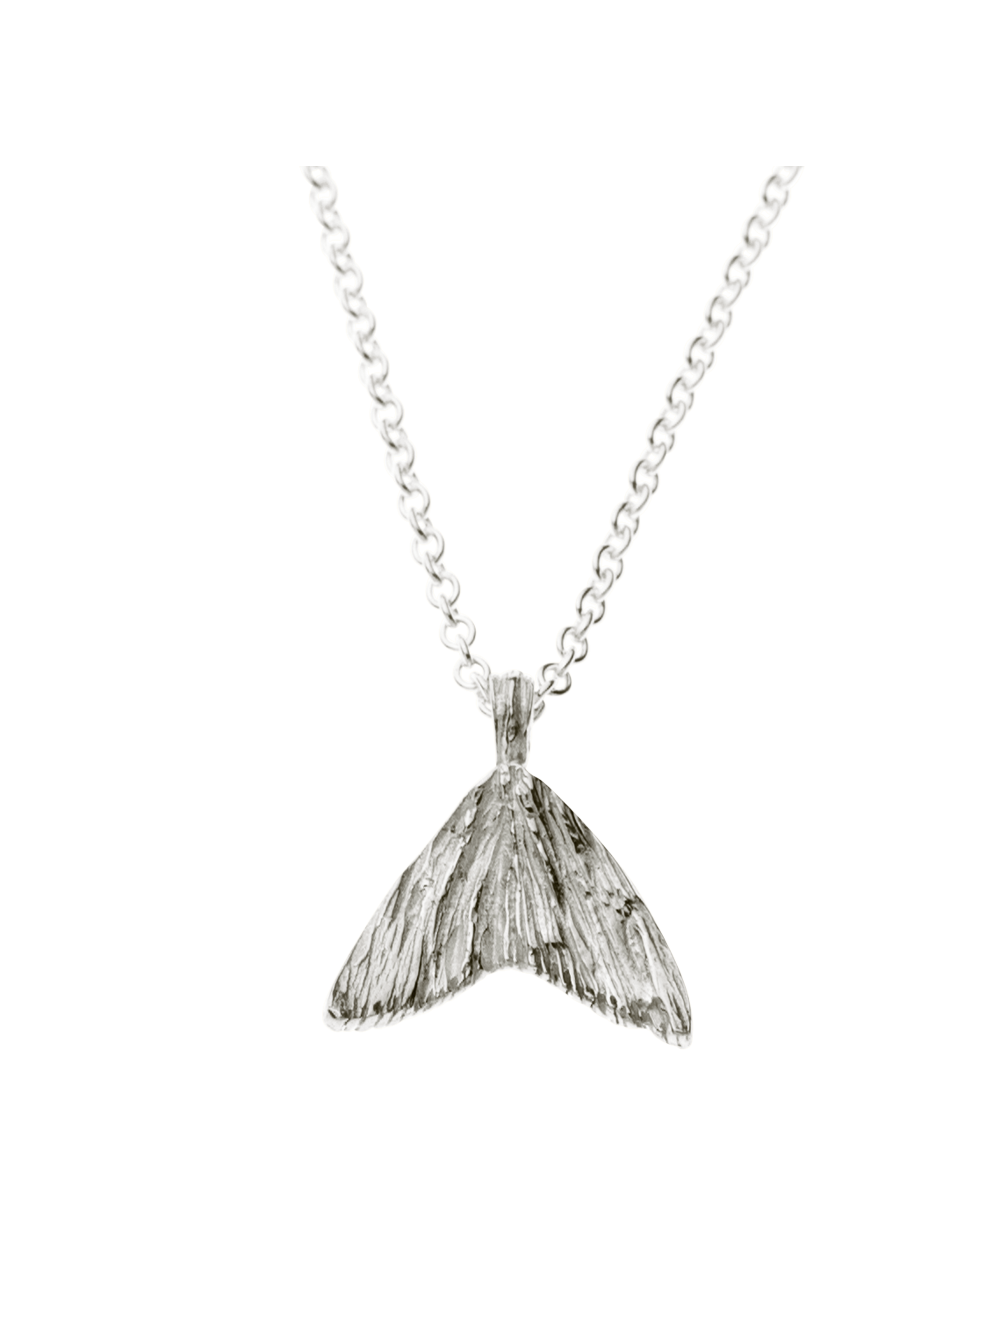 Silver Fish Tail Pendant Necklace - Silver Jewellery